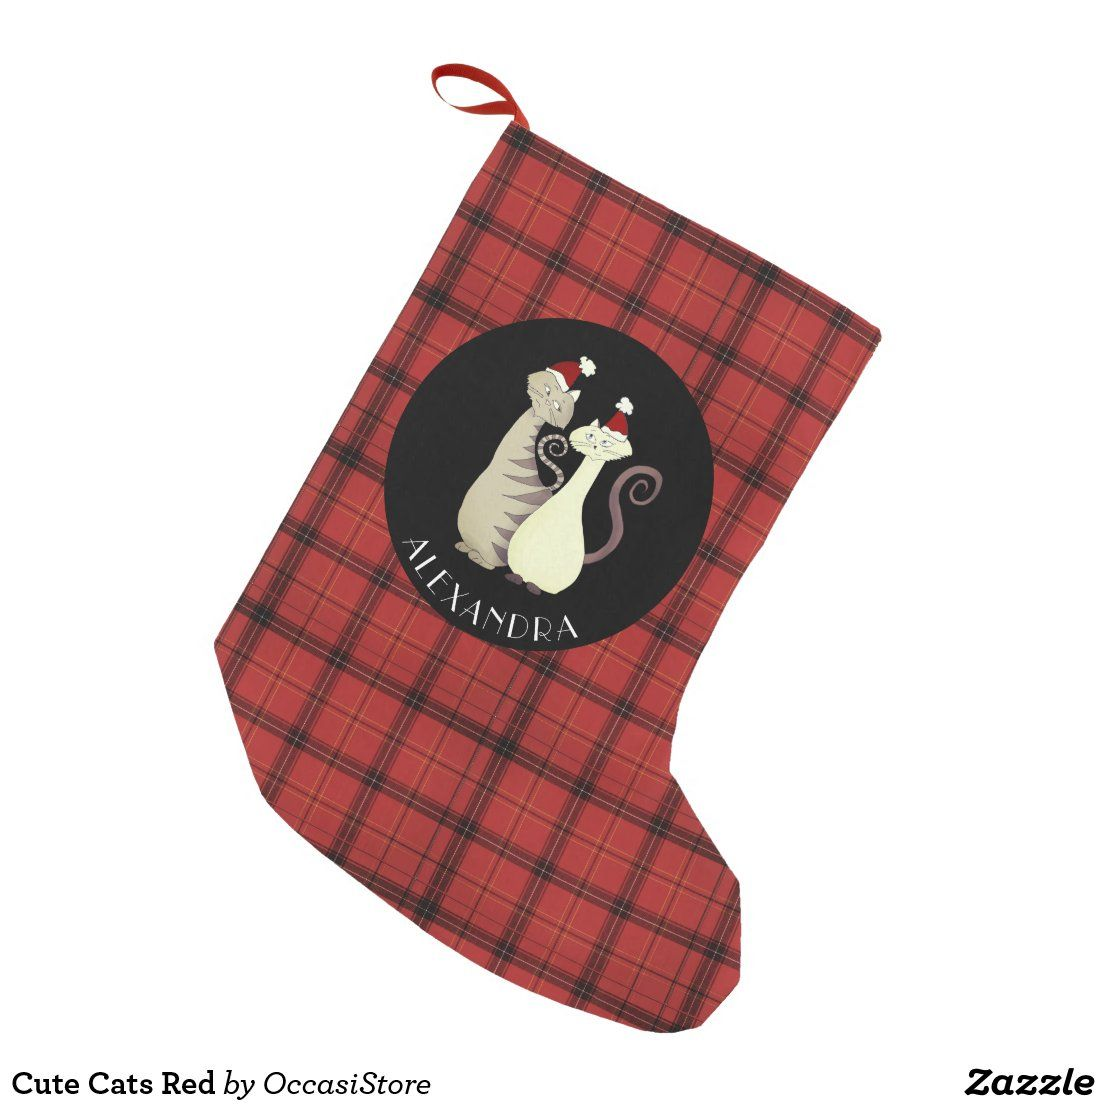 Cute Cats Red Small Christmas Stocking Zazzle Com In 2020 Small Christmas Stockings Personalized Stockings Christmas Stockings